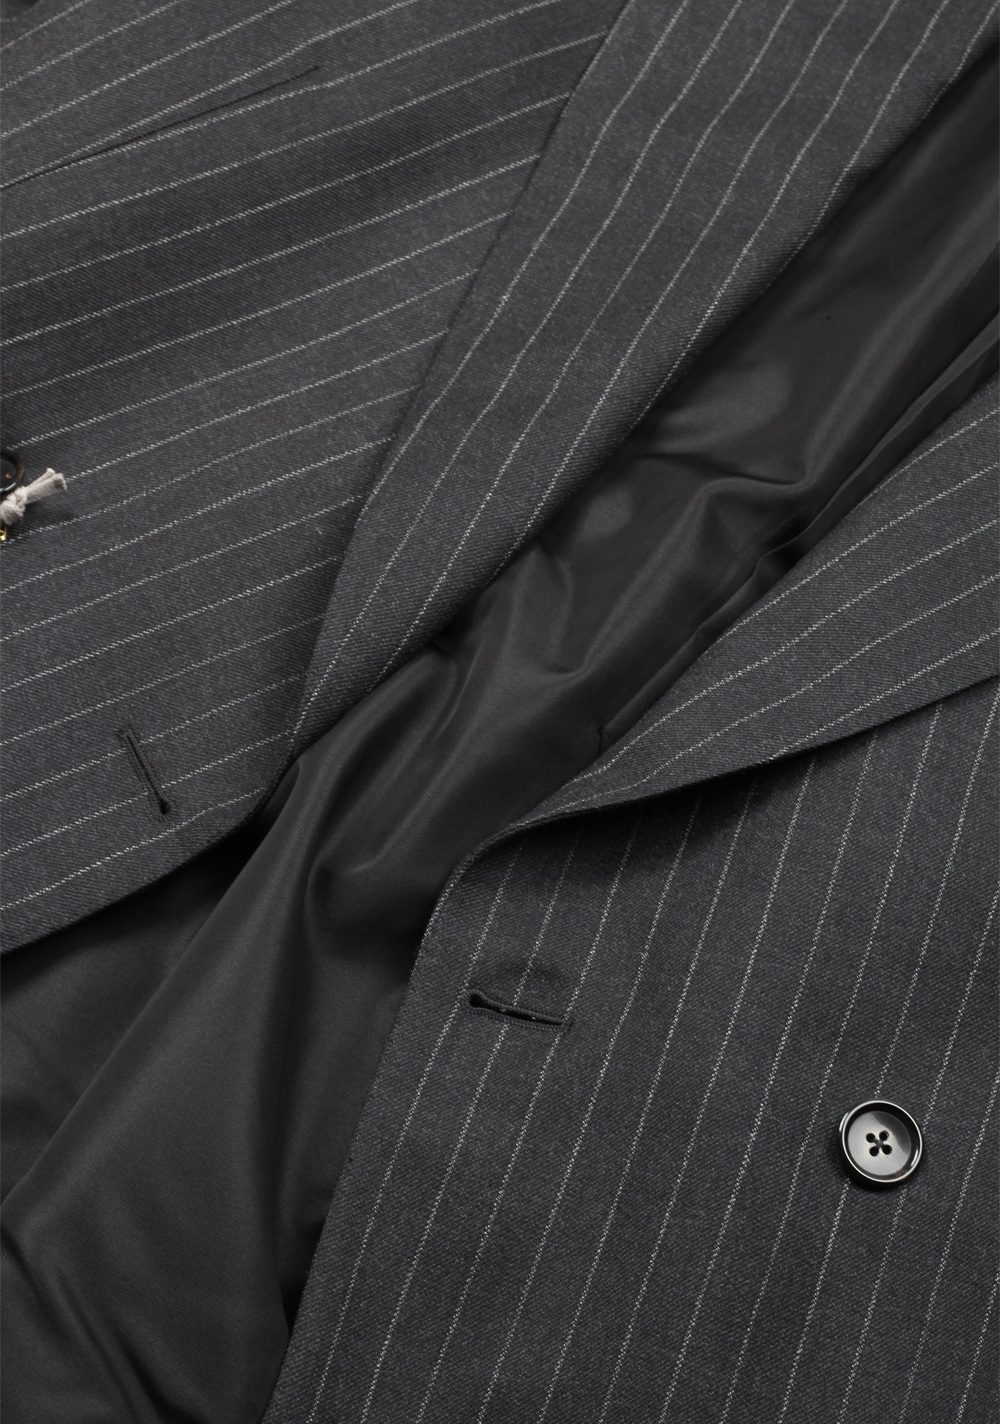 TOM FORD Shelton Double Breasted Striped Gray Sport Coat Size 48 / 38R U.S. In Wool | Costume Limité